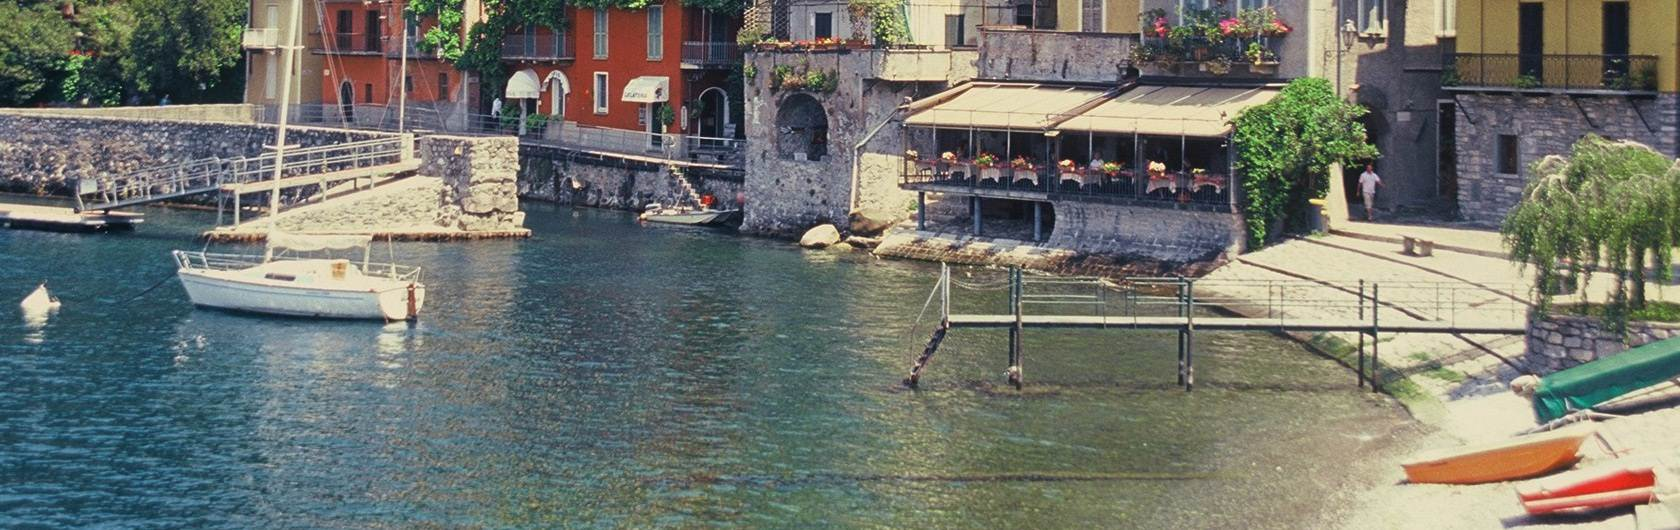 1. Northern Italy: Lake Como, seven day in Bellagio and the central lake.